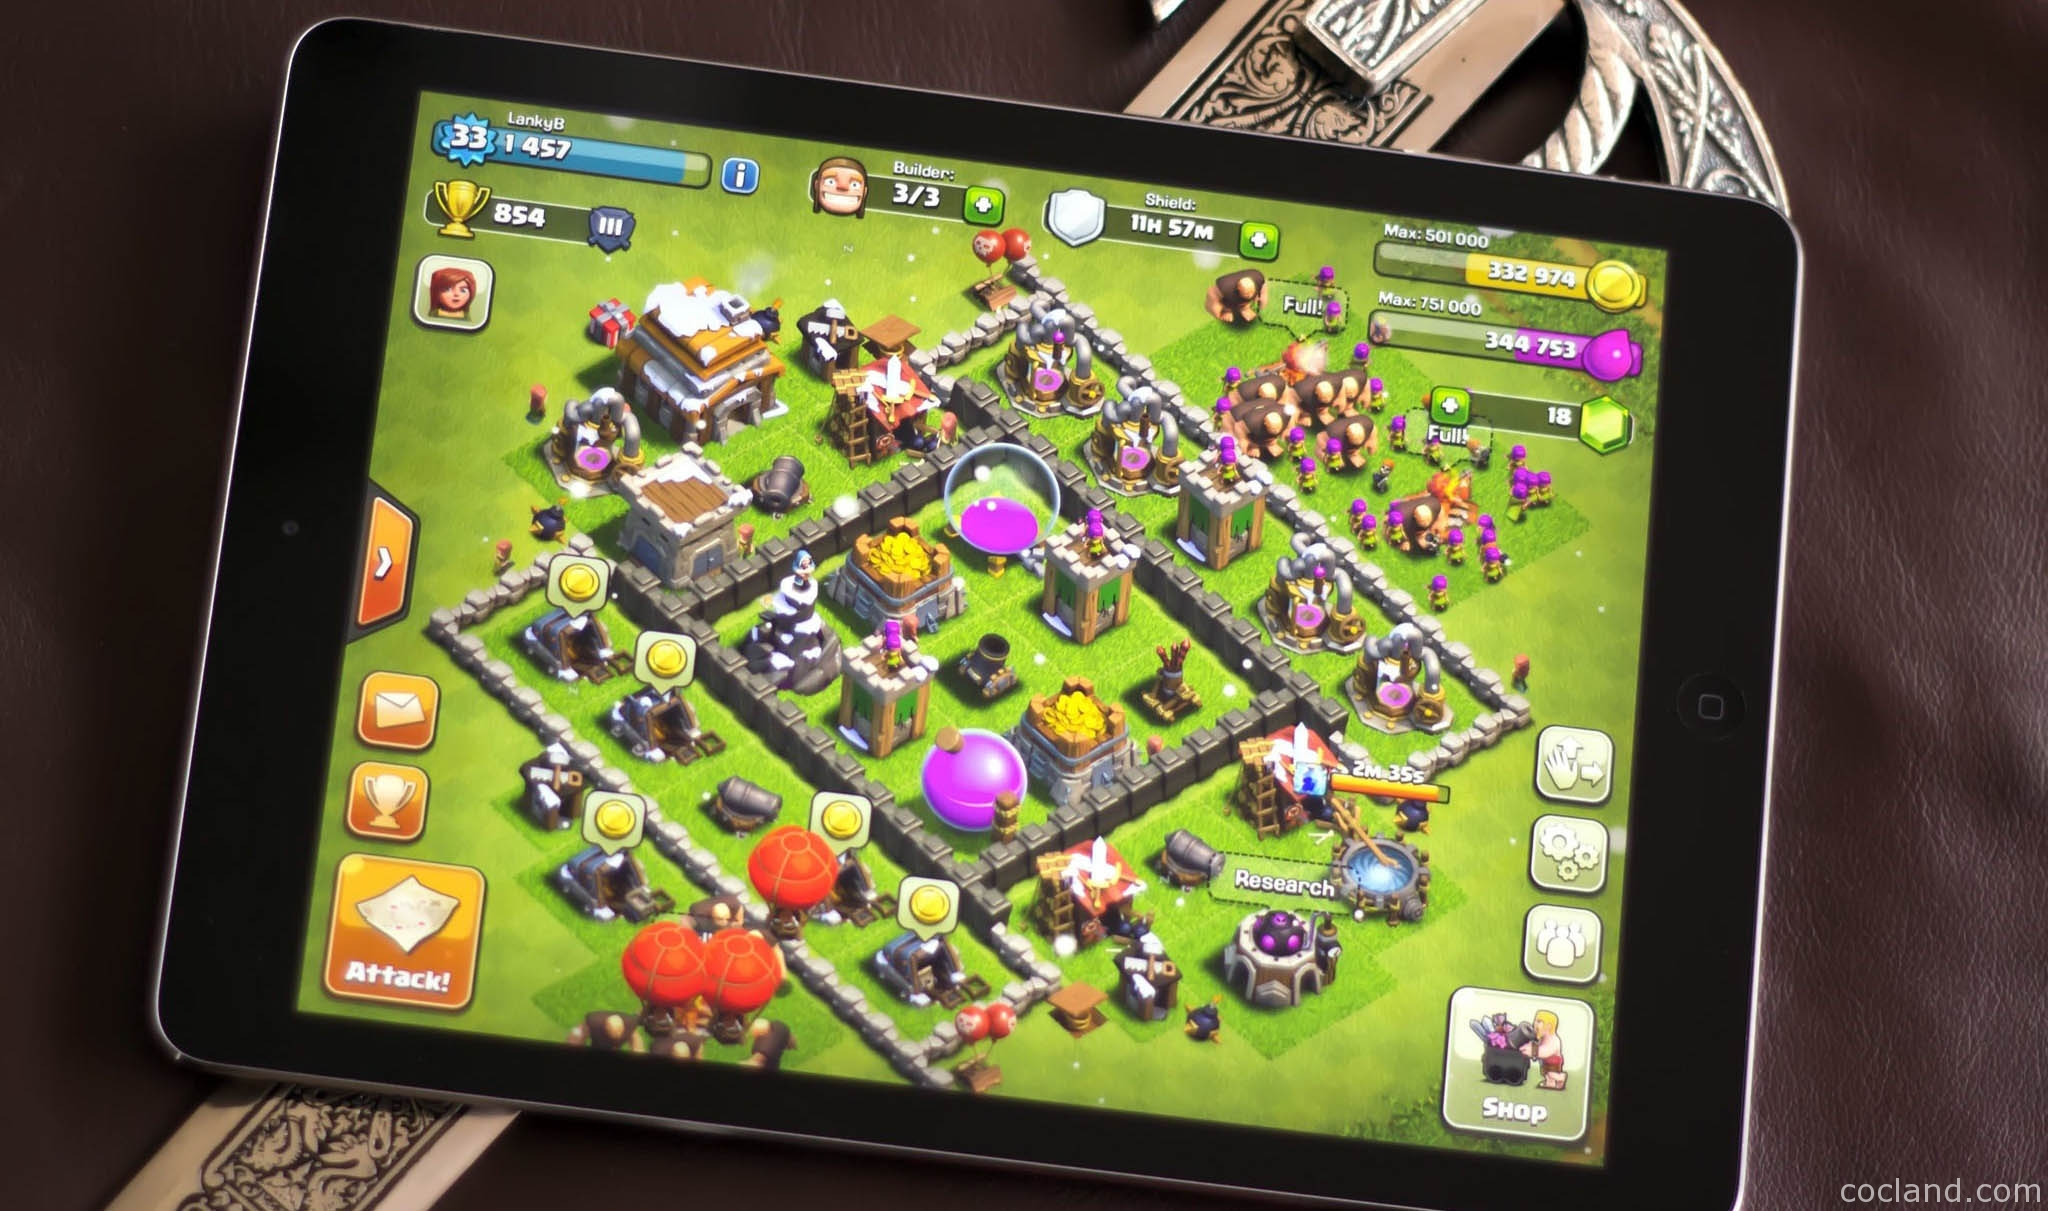 Play Clash of Clans on iPad